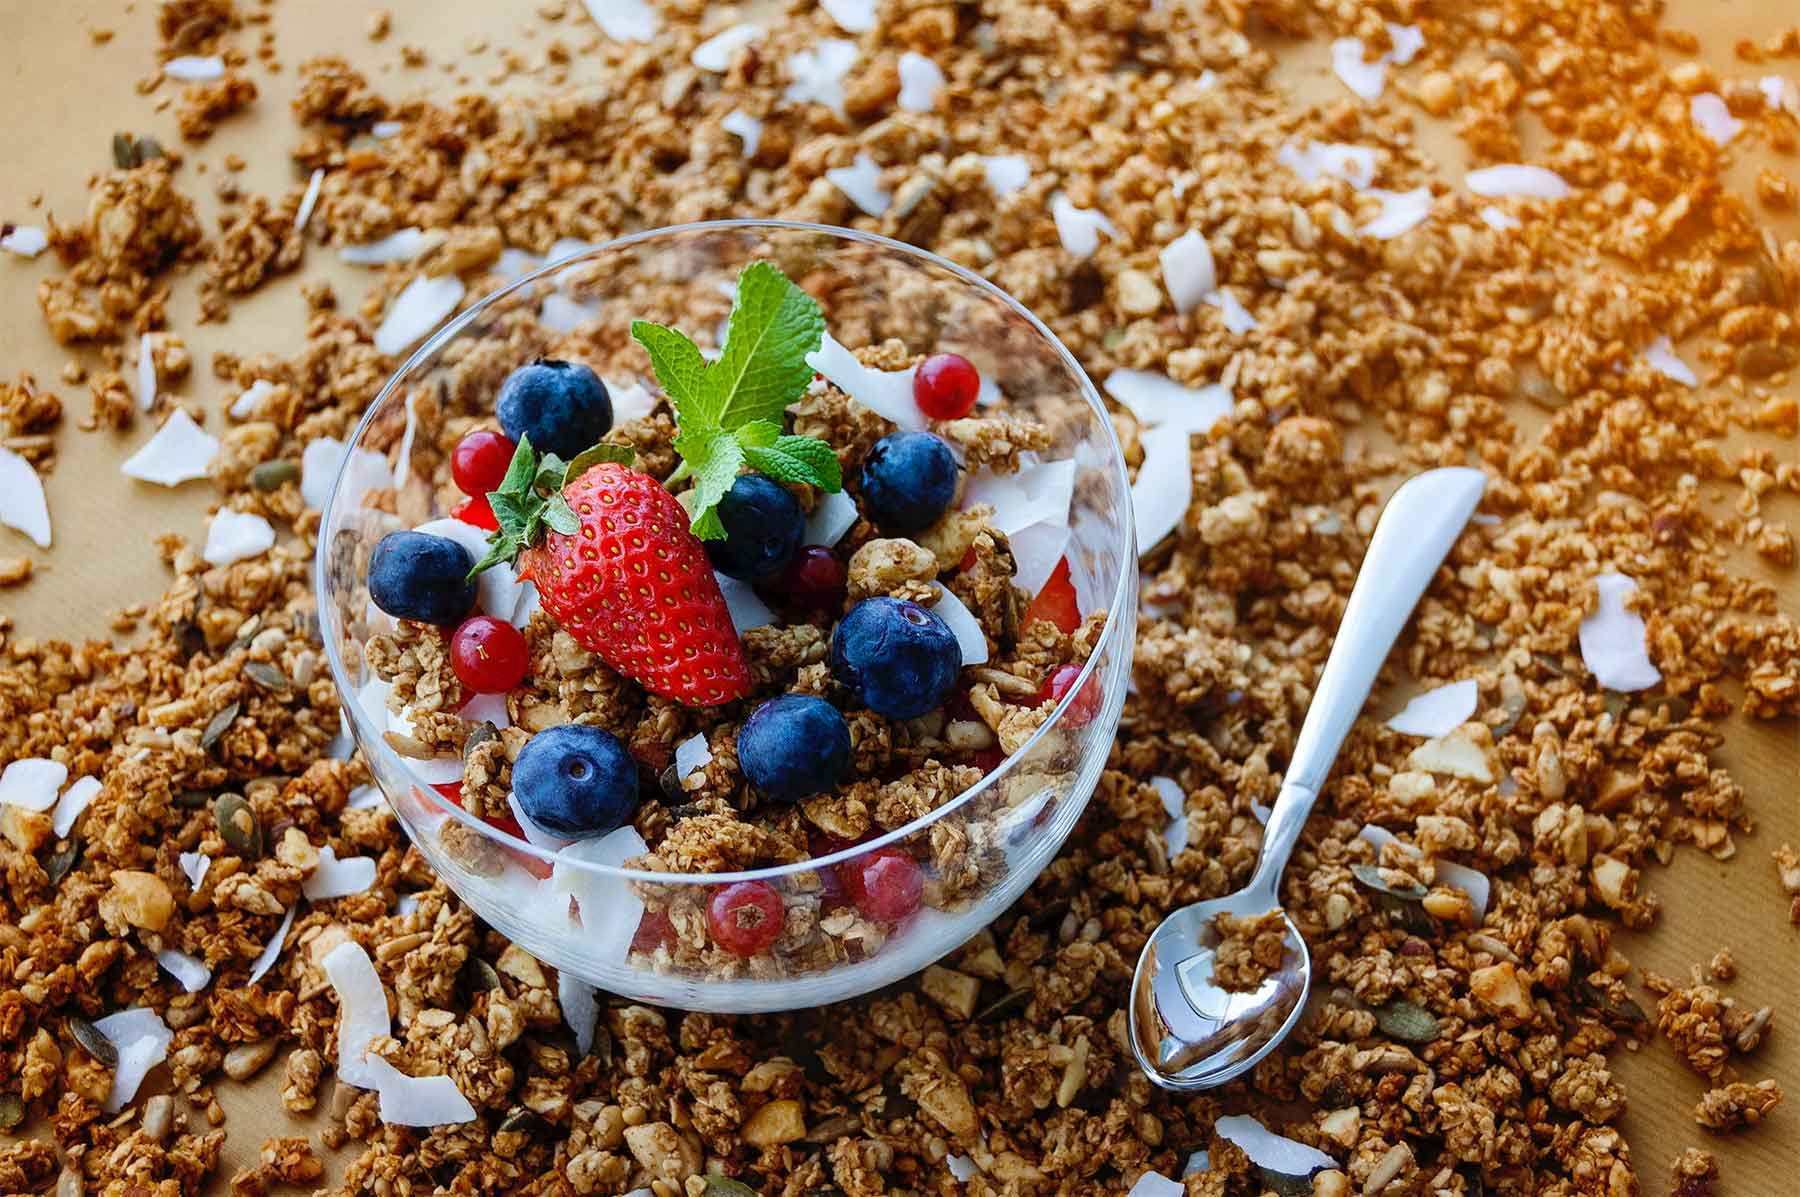 Bowl of granola with fresh berries